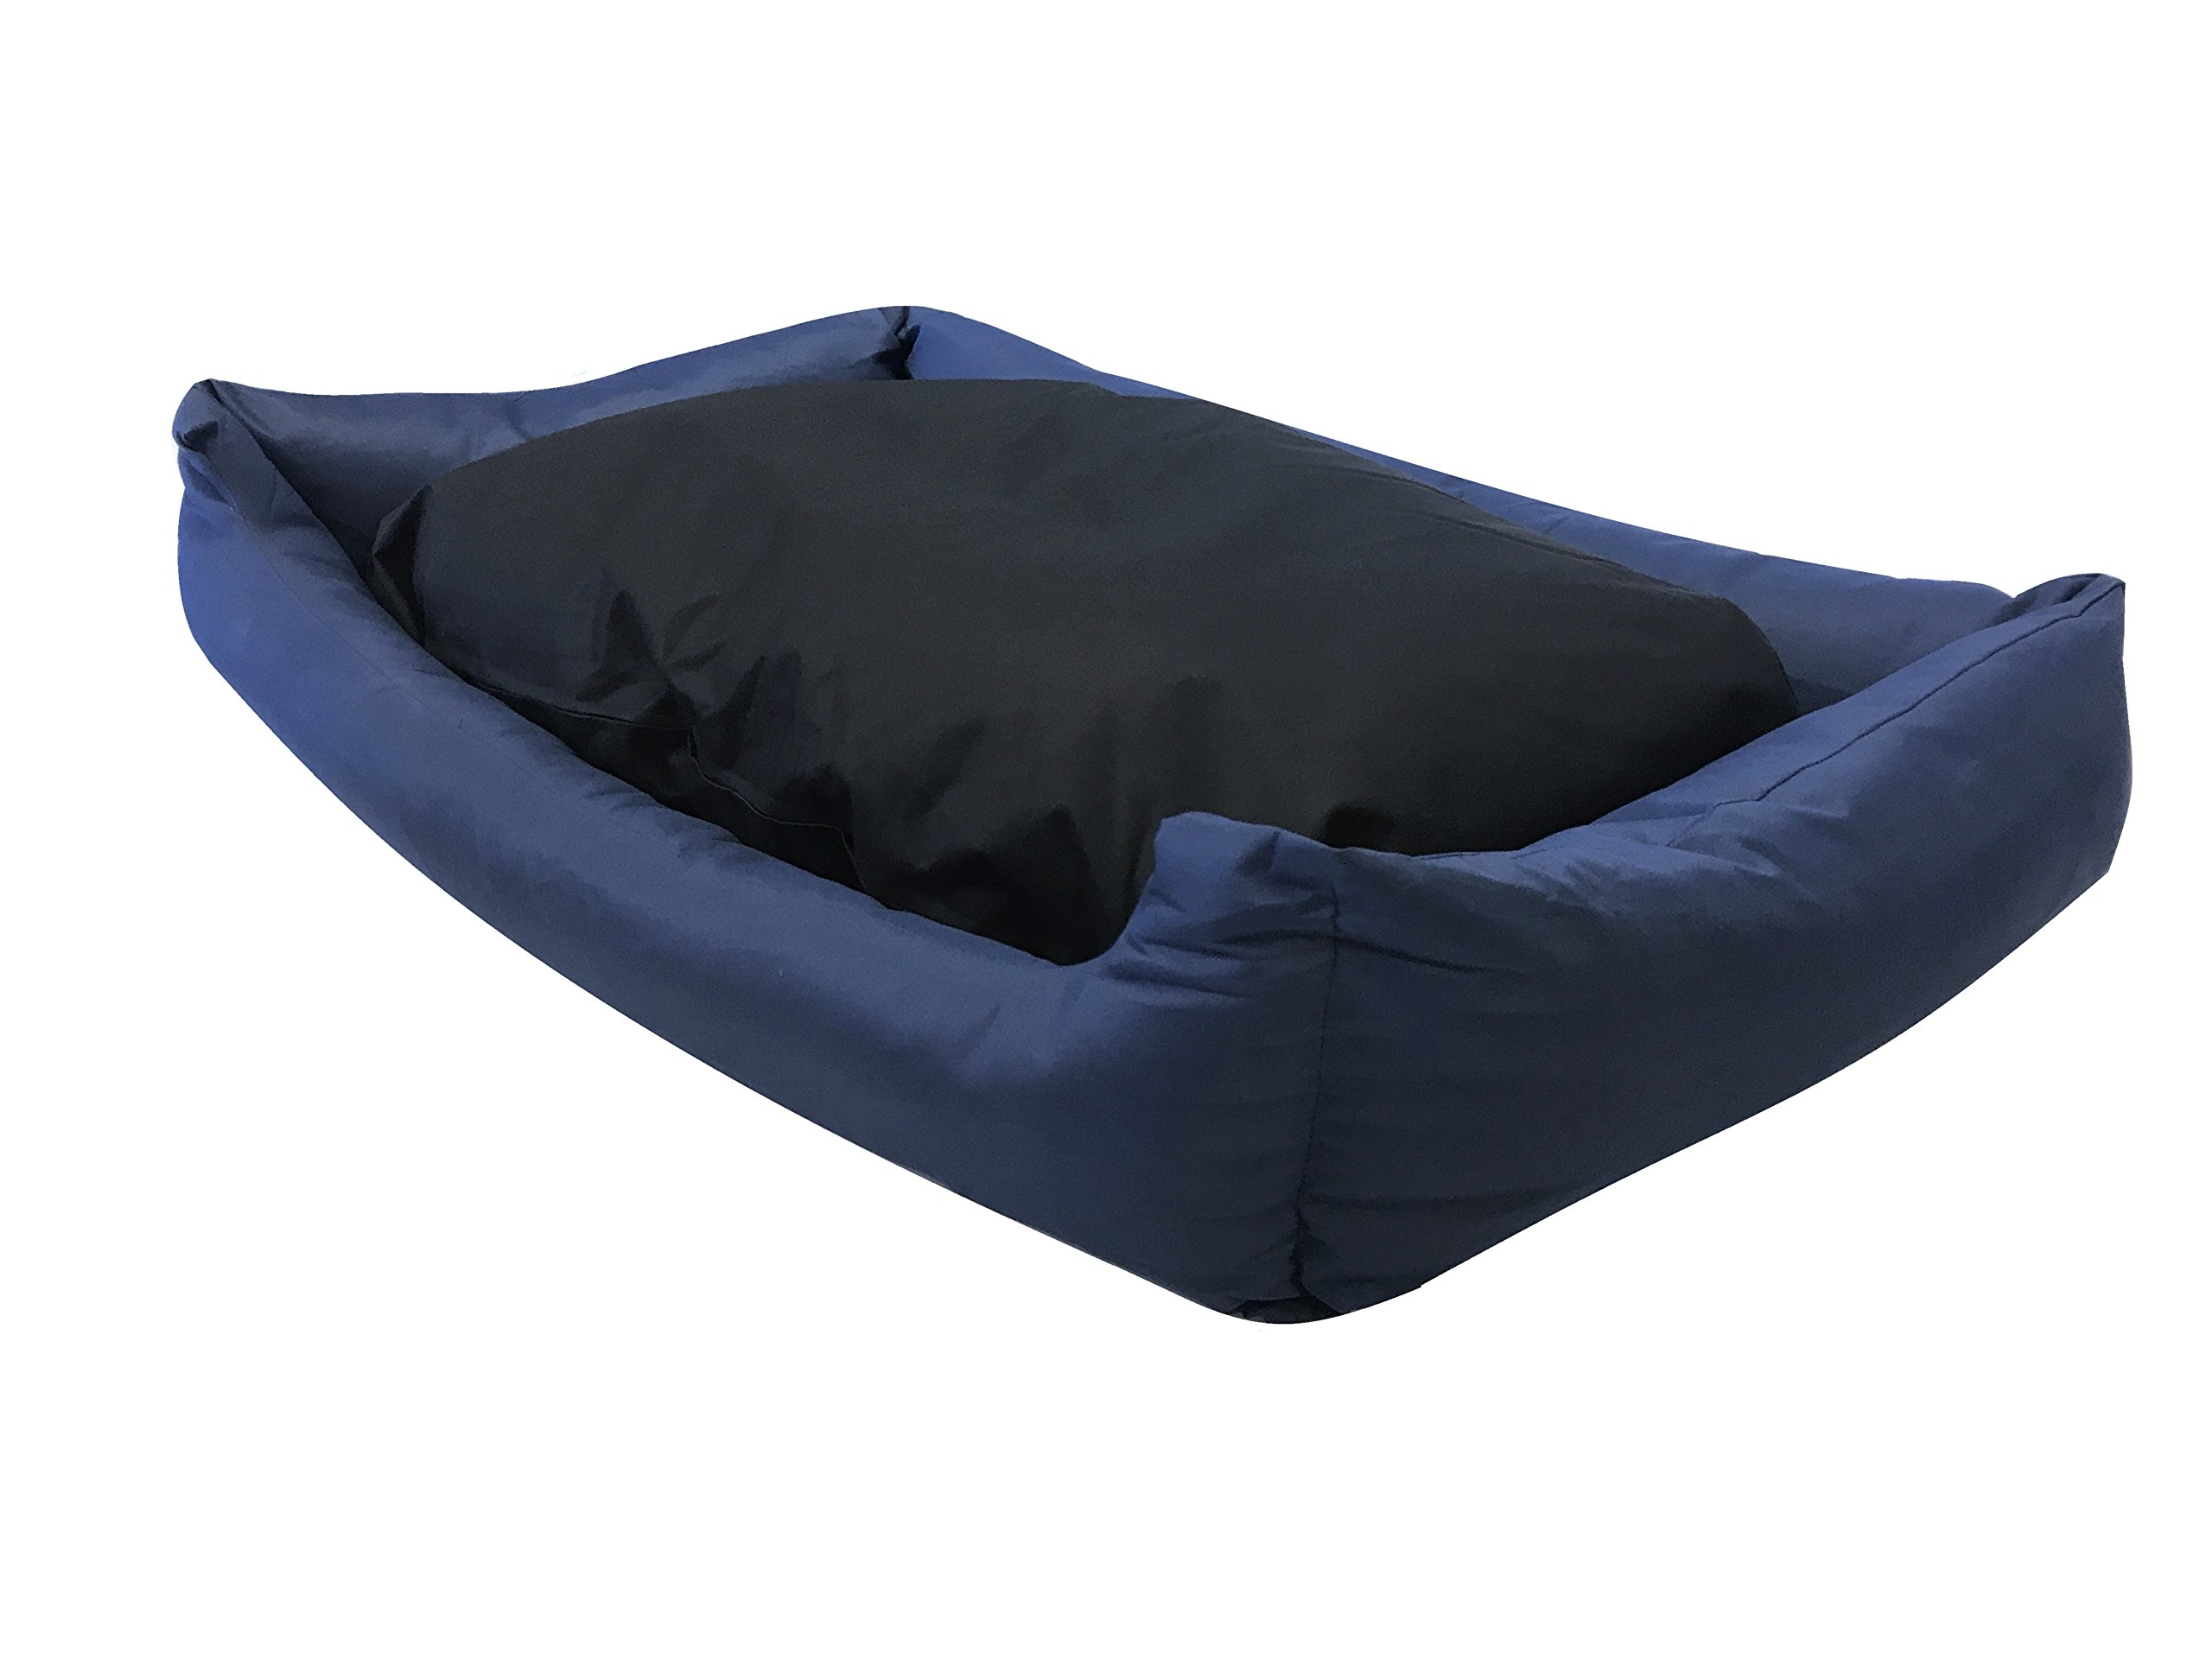 eConsumersUSA Dog Bed Stuffed Pillow with Polyester Filling; Durable External Oxford Fabric Waterproof Anti Slip Cover and Inner Liner Included for Small to Large Dogs (54x37 inches, Blue)